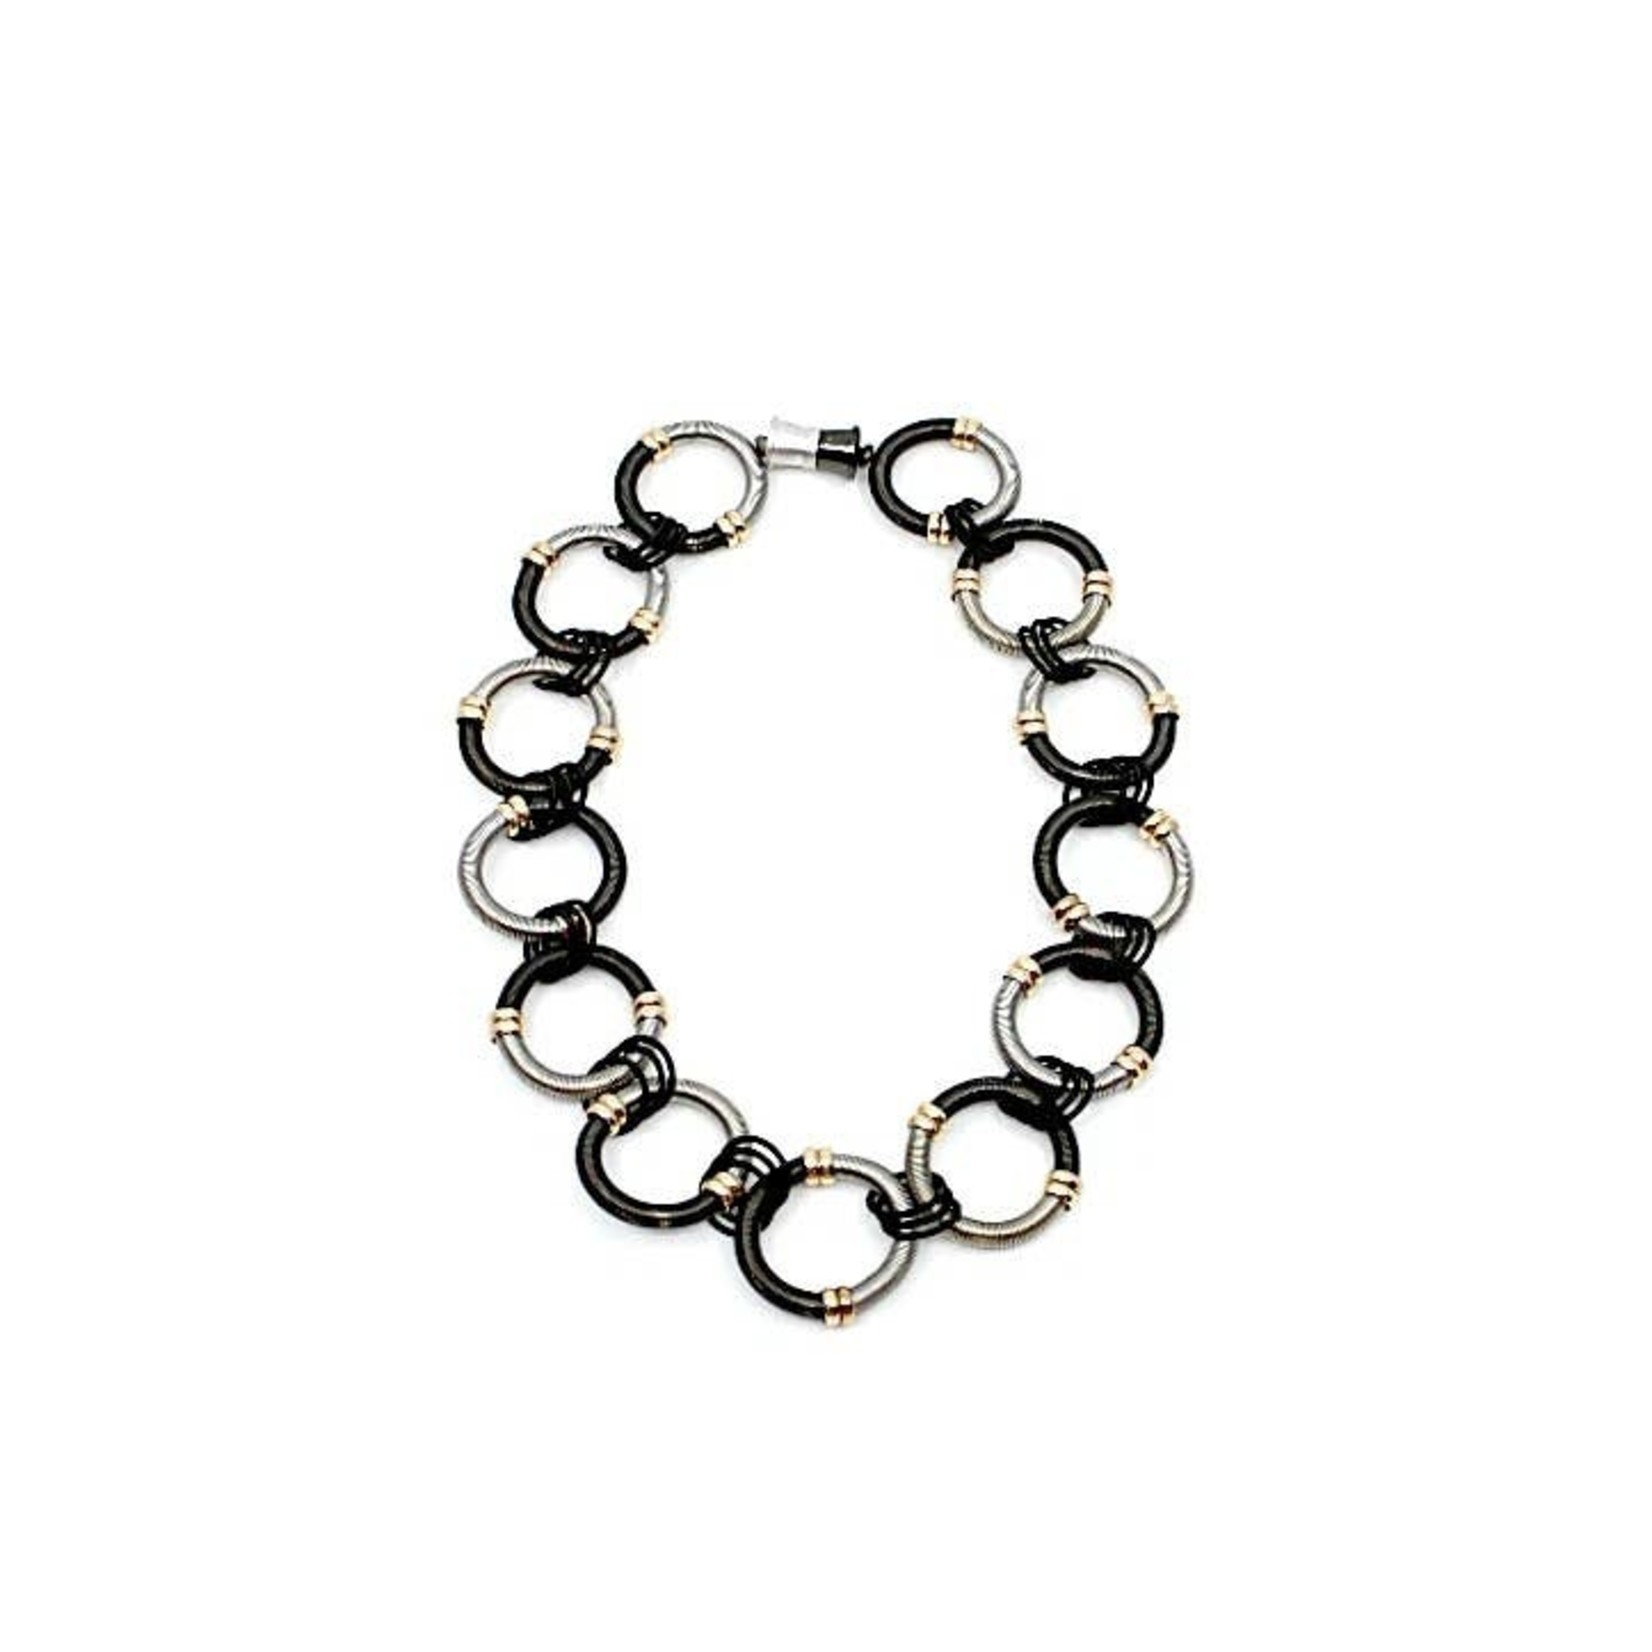 Sea Lily Large Round Black/Silver Piano Wire Rings Short Necklace